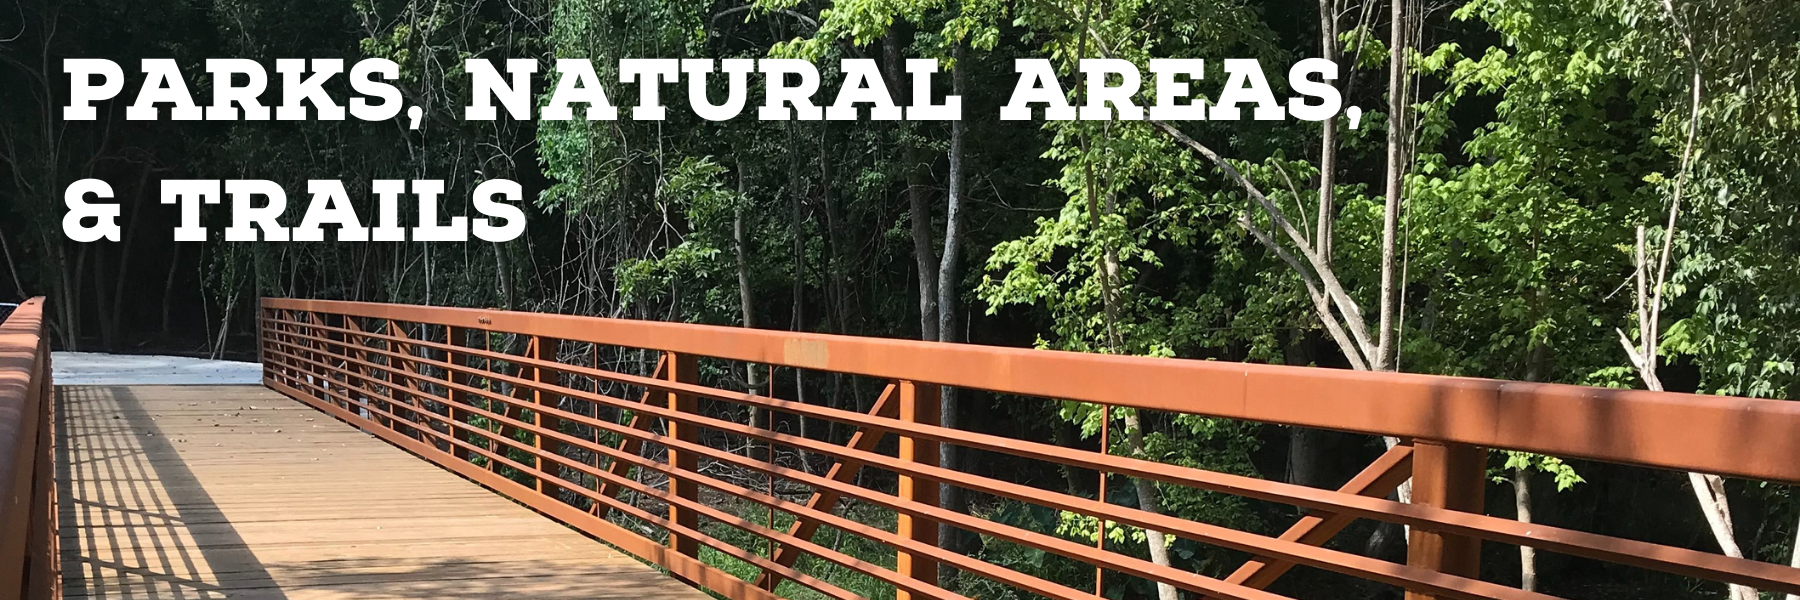 Parks Natural Areas & Trails